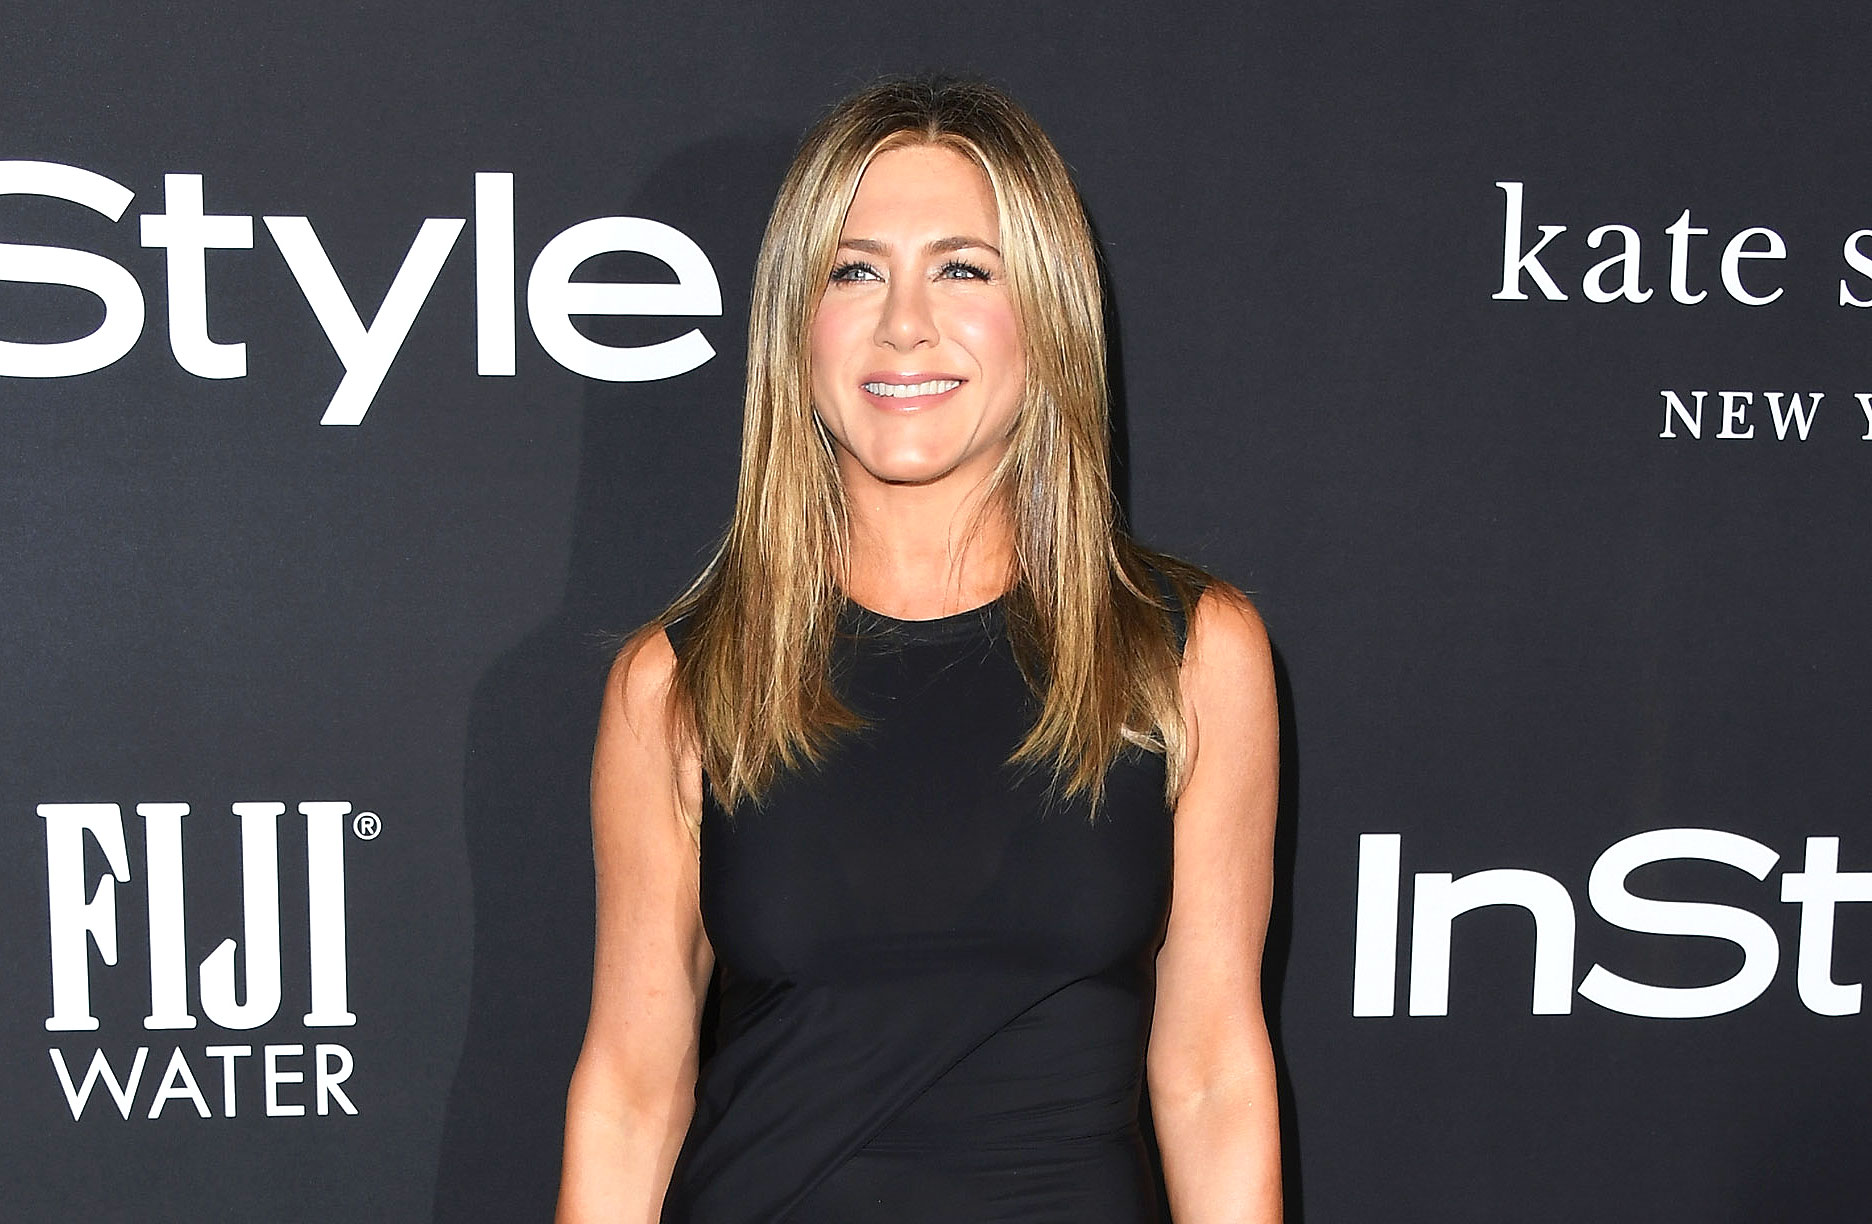 Jennifer Aniston Spills The Best Things About The Rachel Haircut